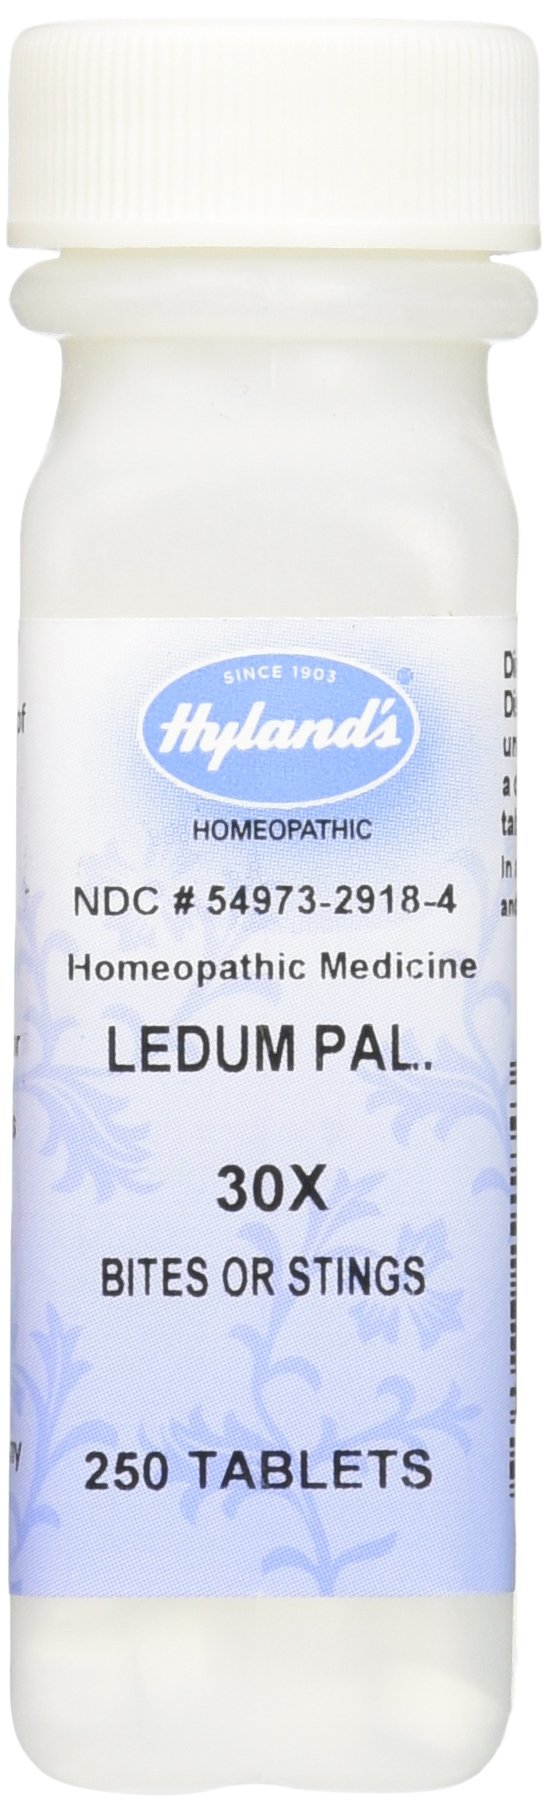 Hyland's Ledum Pal. 30X Tablets, Natural Homeopathic Bites & Stings Relief, 250 Count